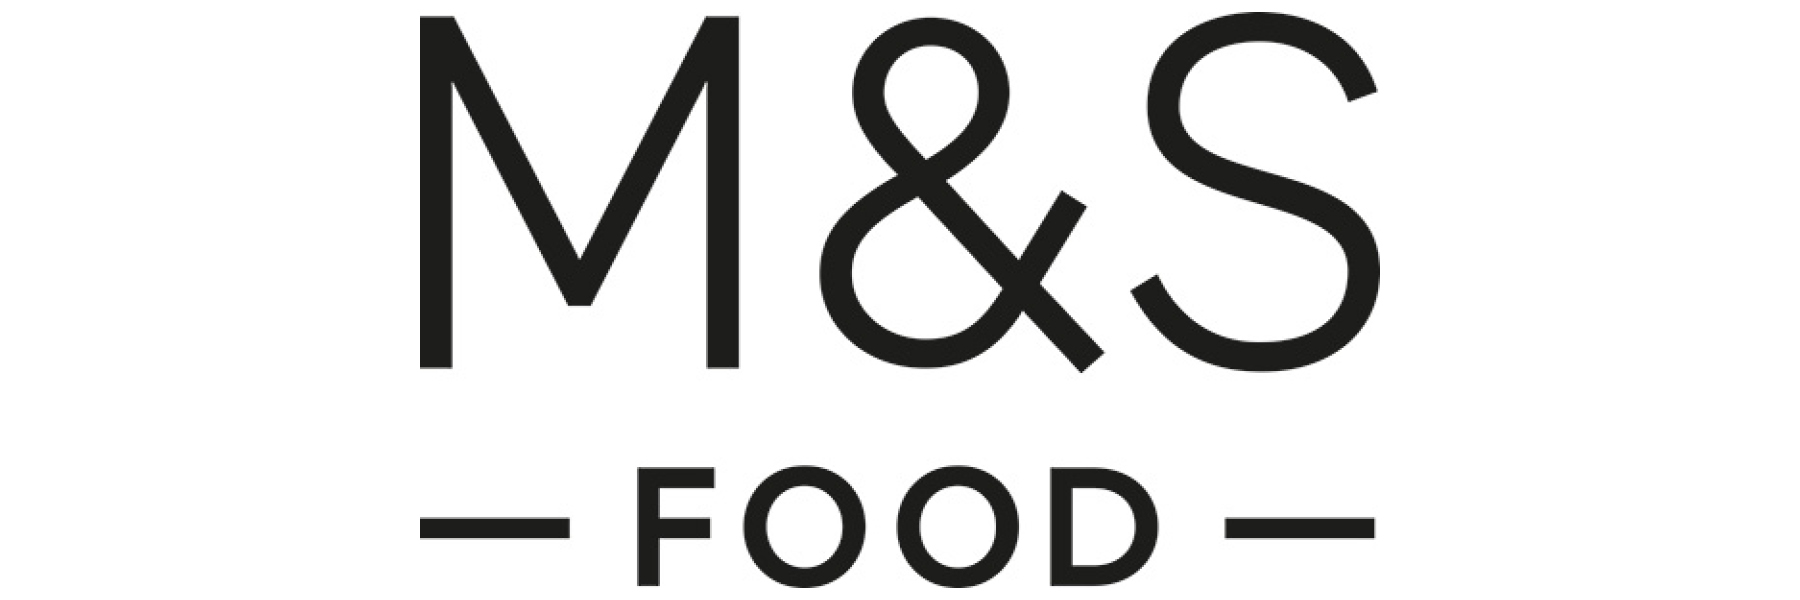 M&S returns to The Gracechurch Centre with a Simply Food concession in WHSmith